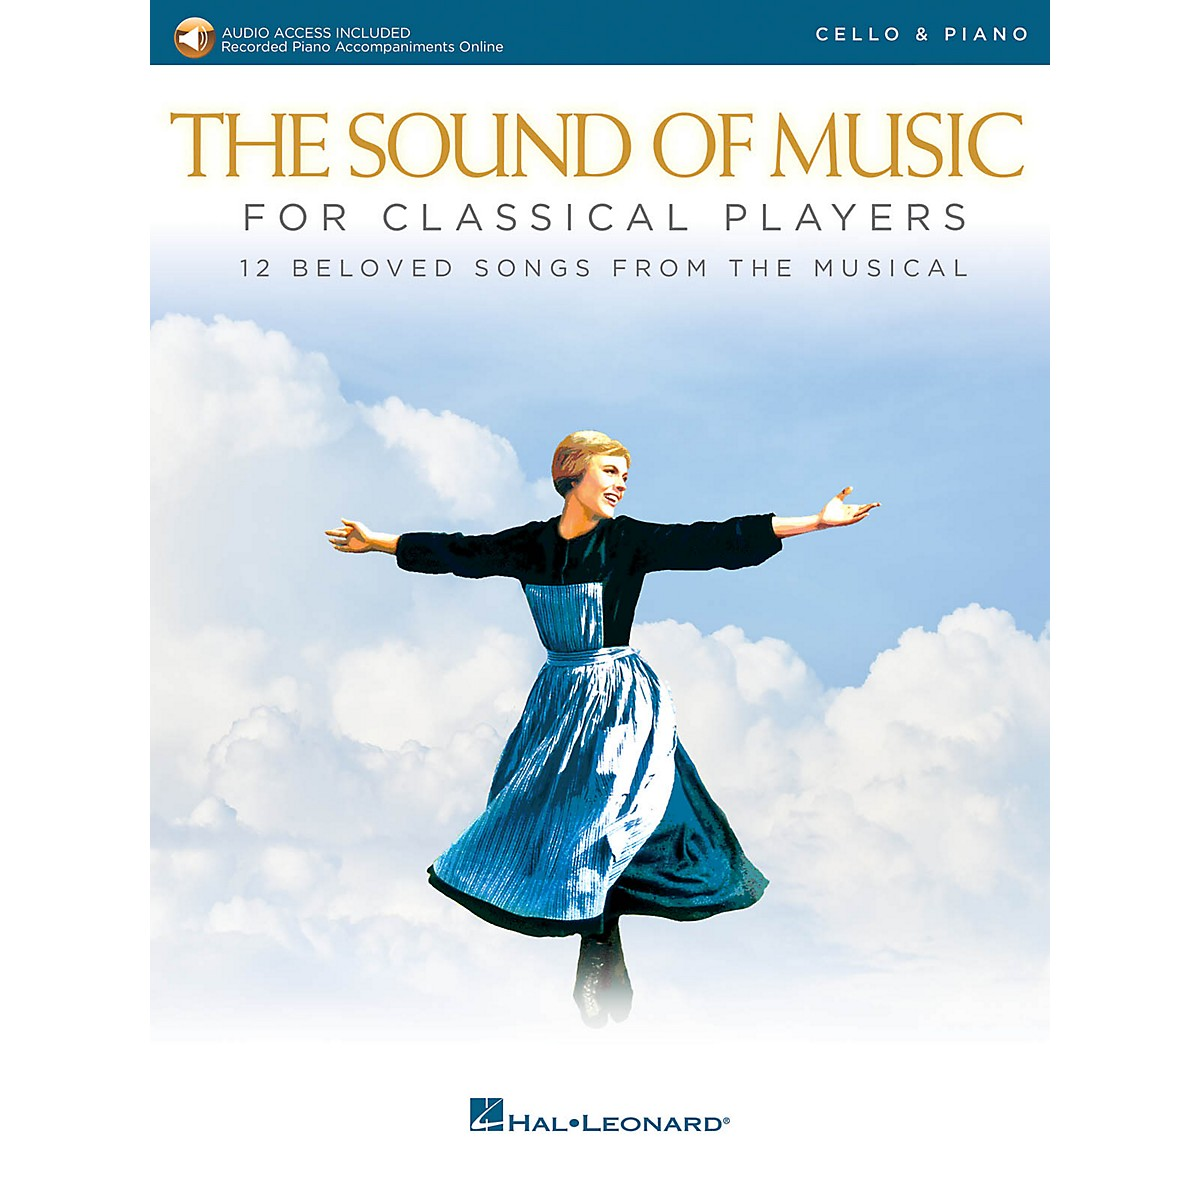 Hal Leonard The Sound of Music for Classical Players - Cello and Piano Book/Audio Online